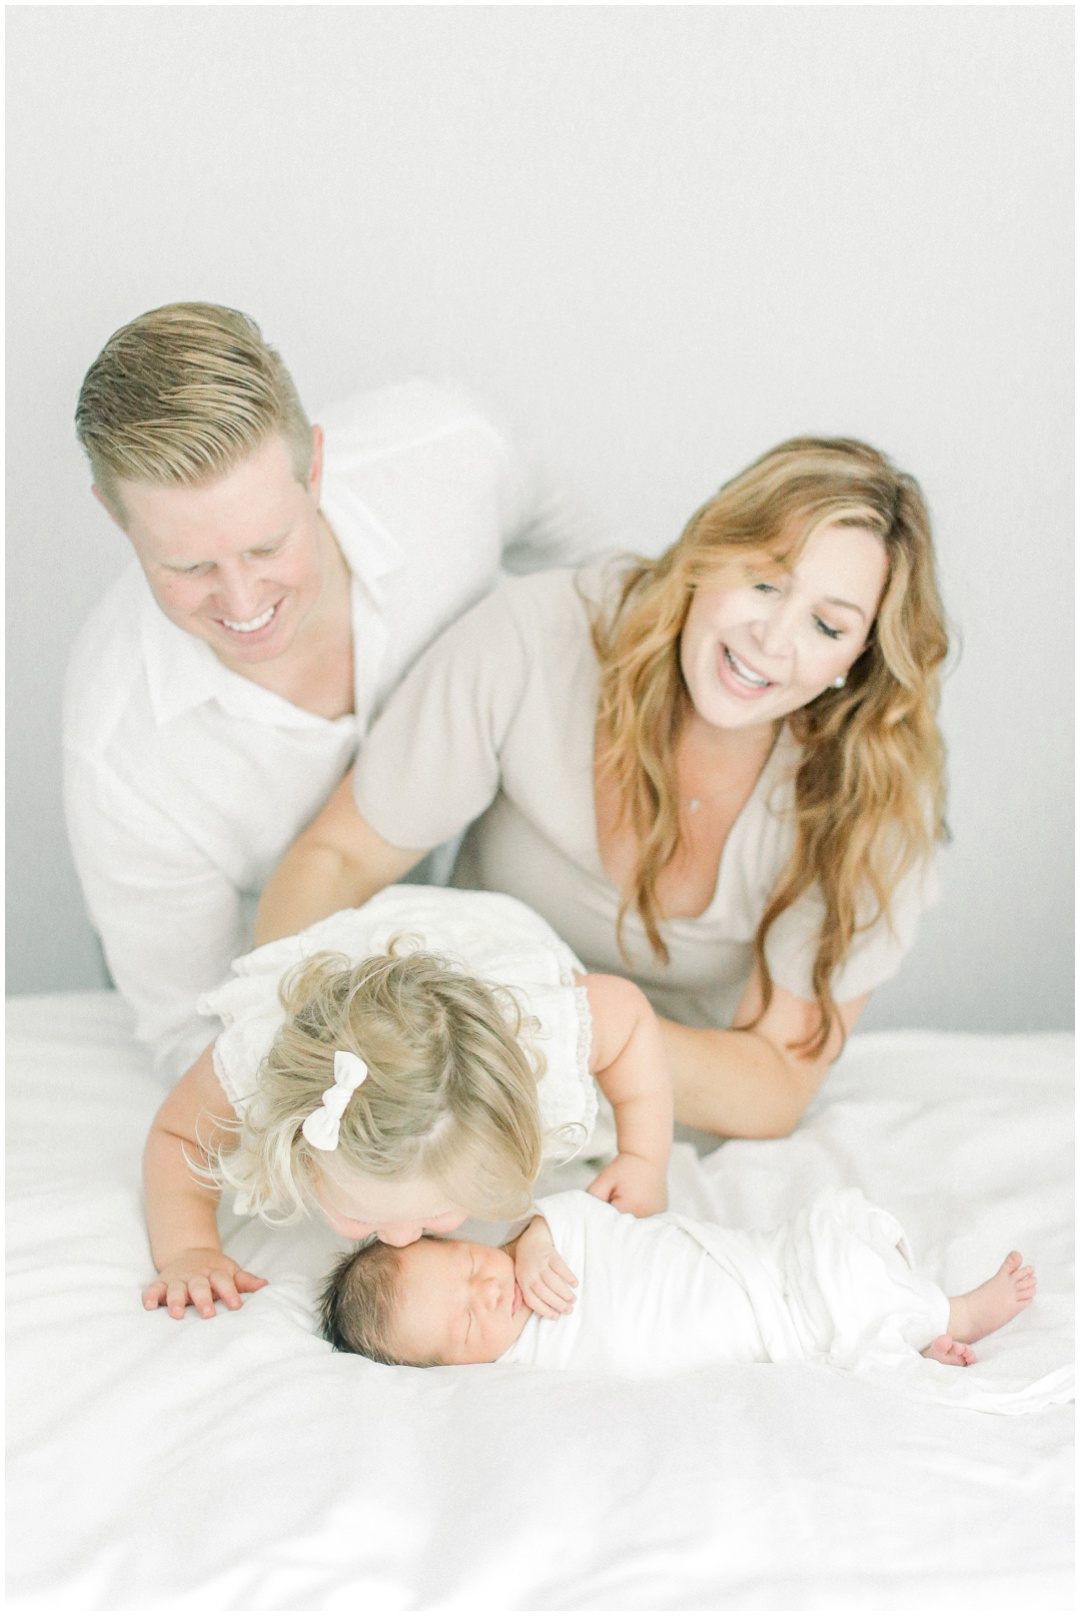 Newport_Beach_Newborn_Light_Airy_Natural_Photographer_Newport_Beach_Photographer_Orange_County_Family_Photographer_Cori_Kleckner_Photography_Newport_Beach_Photographer_Blaire_Baker_Brett_Baker_Caroline_Baker__3896.jpg